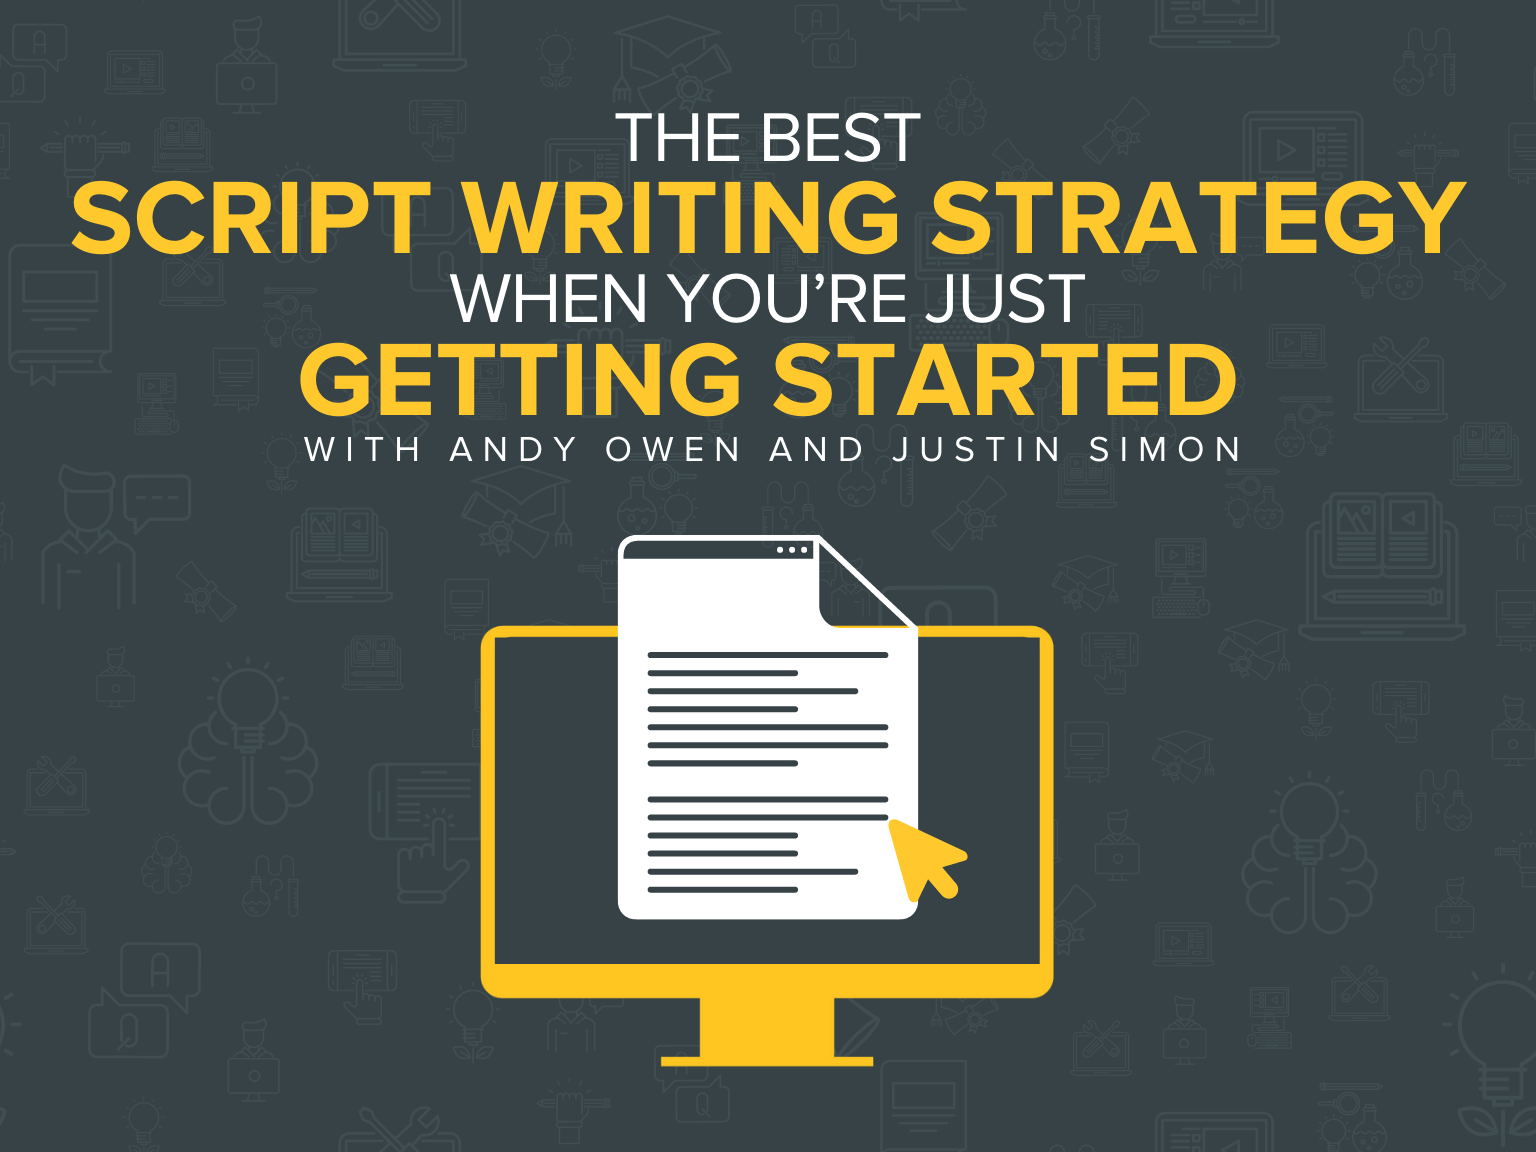 The Best Script Writing Strategy When You're Just Getting Started With Andy Owen and Justin Simon